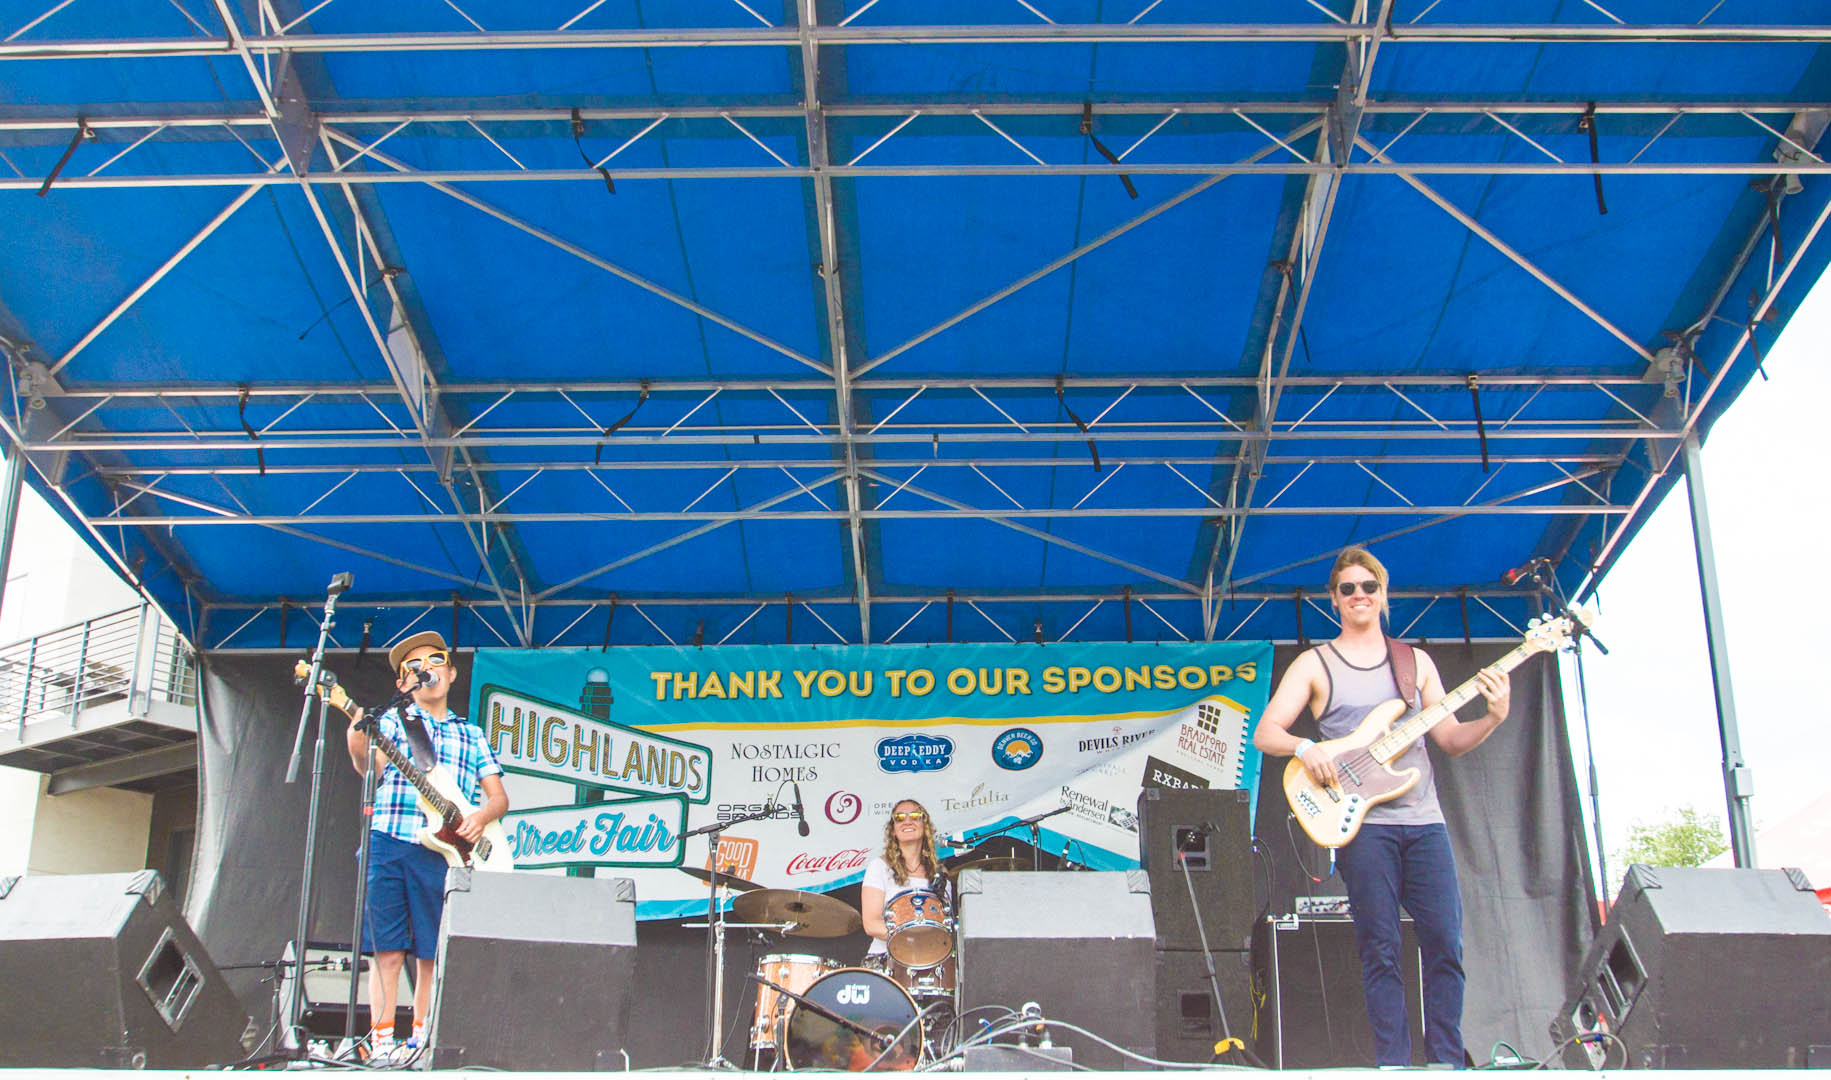 The Dylan Miles Experience dominates the stage at the Highlands Street Fair